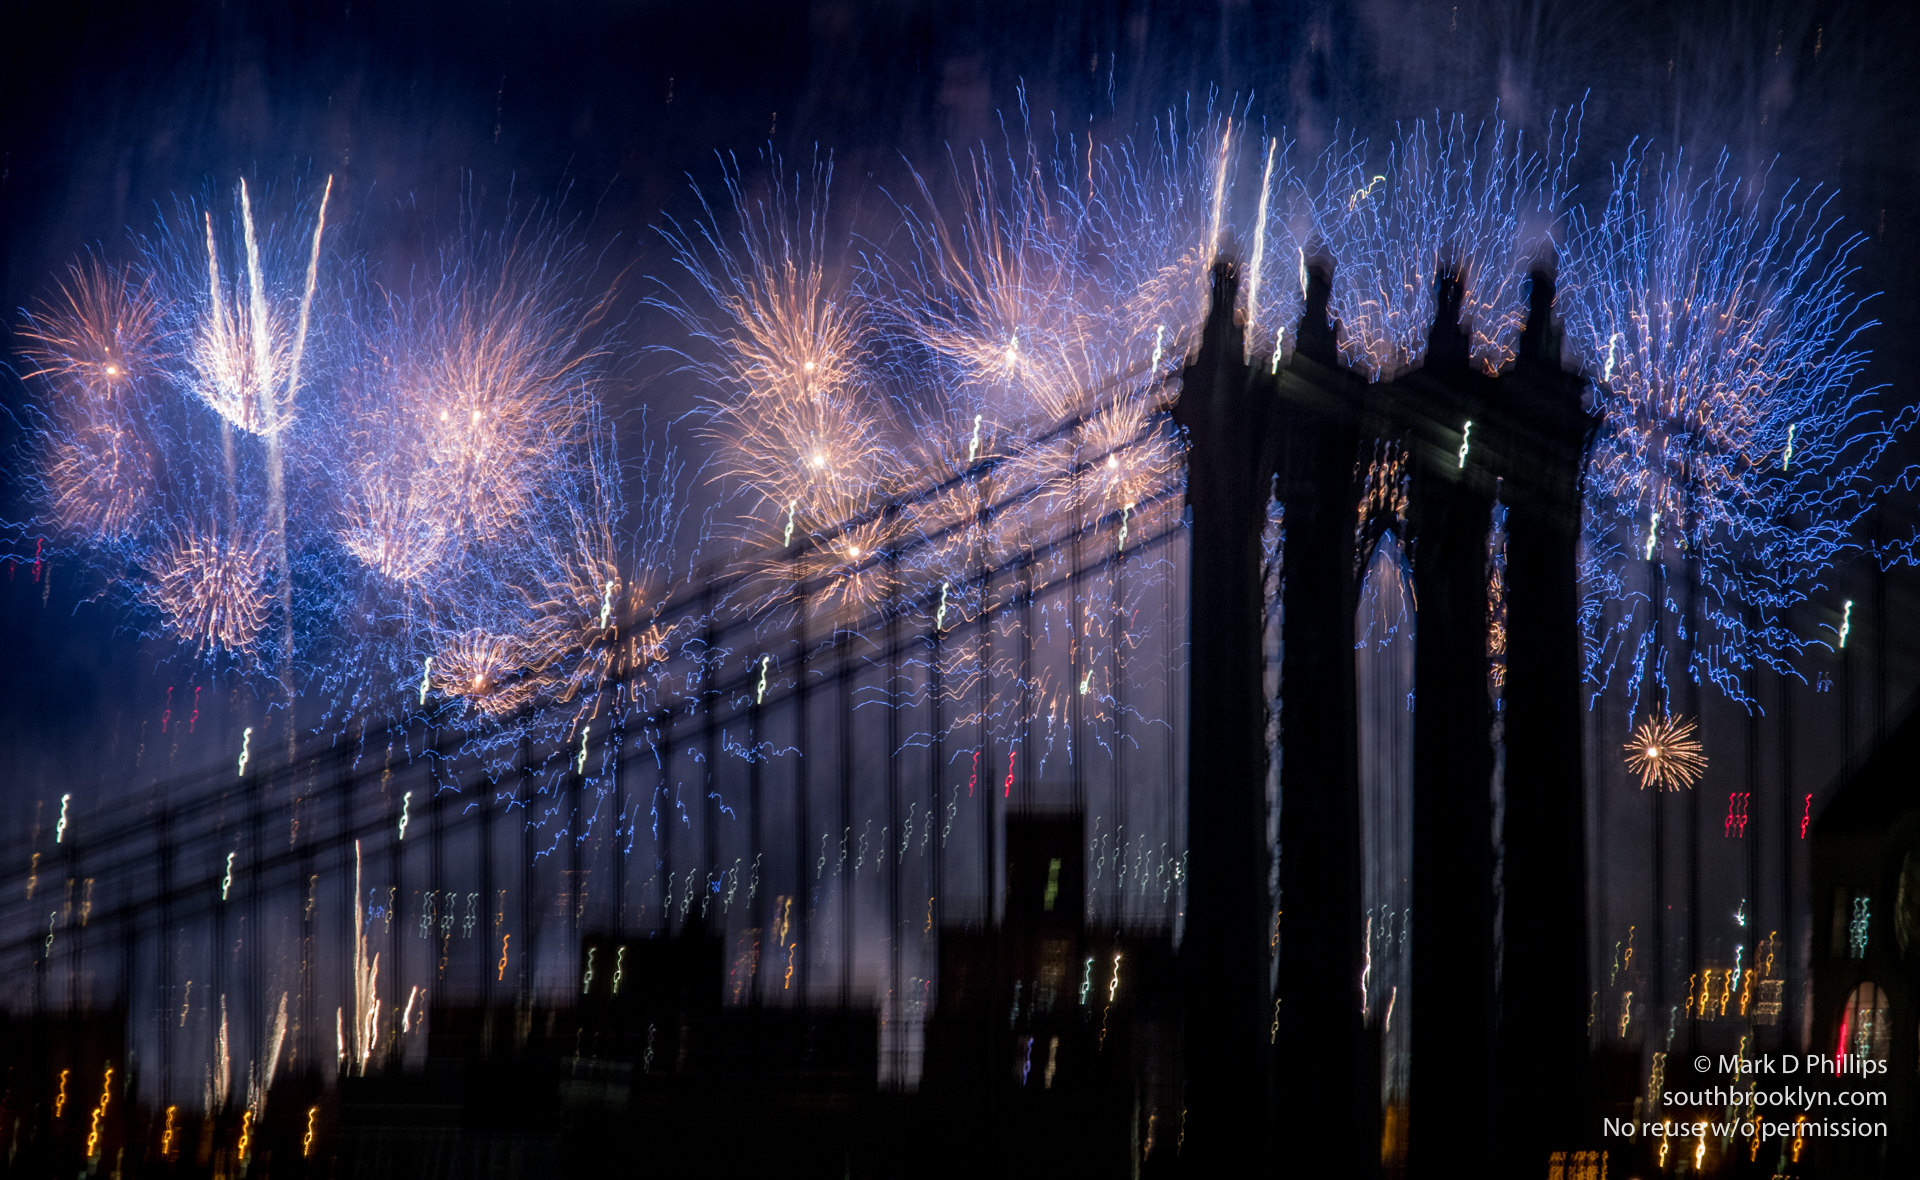 Fireworks and a majestic bridge come together to give a different look to the Macy's Fourth of July fireworks 2017 in New York City. Blue fire over a ghostly city. ©Mark D Phillips